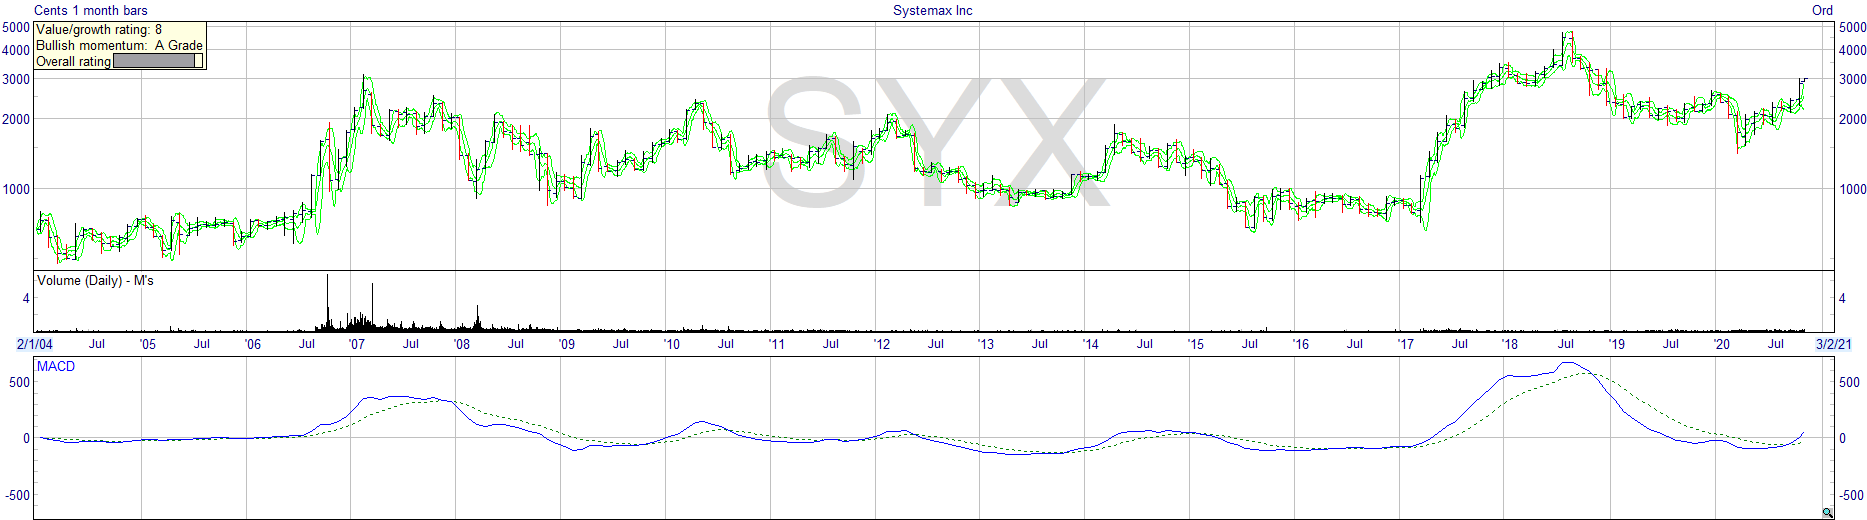 systemax_syx_chart_stock_performance